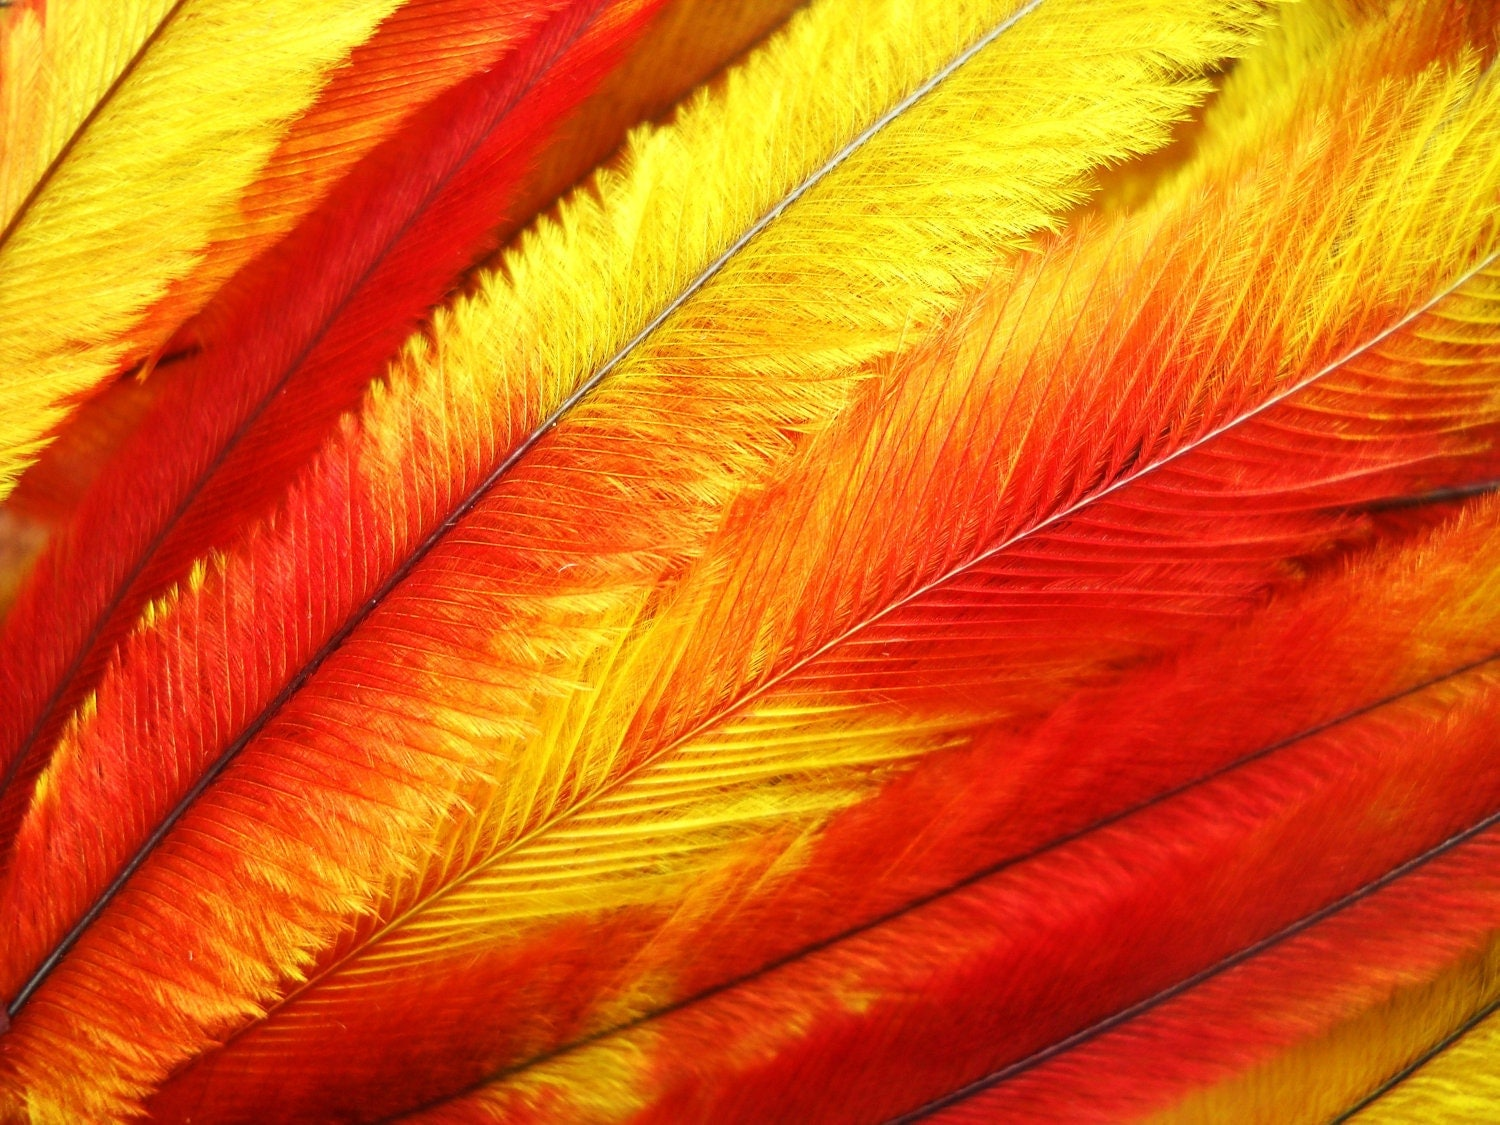 10 Tie Dye Feather Extensions Cruelty Free Orange Red And